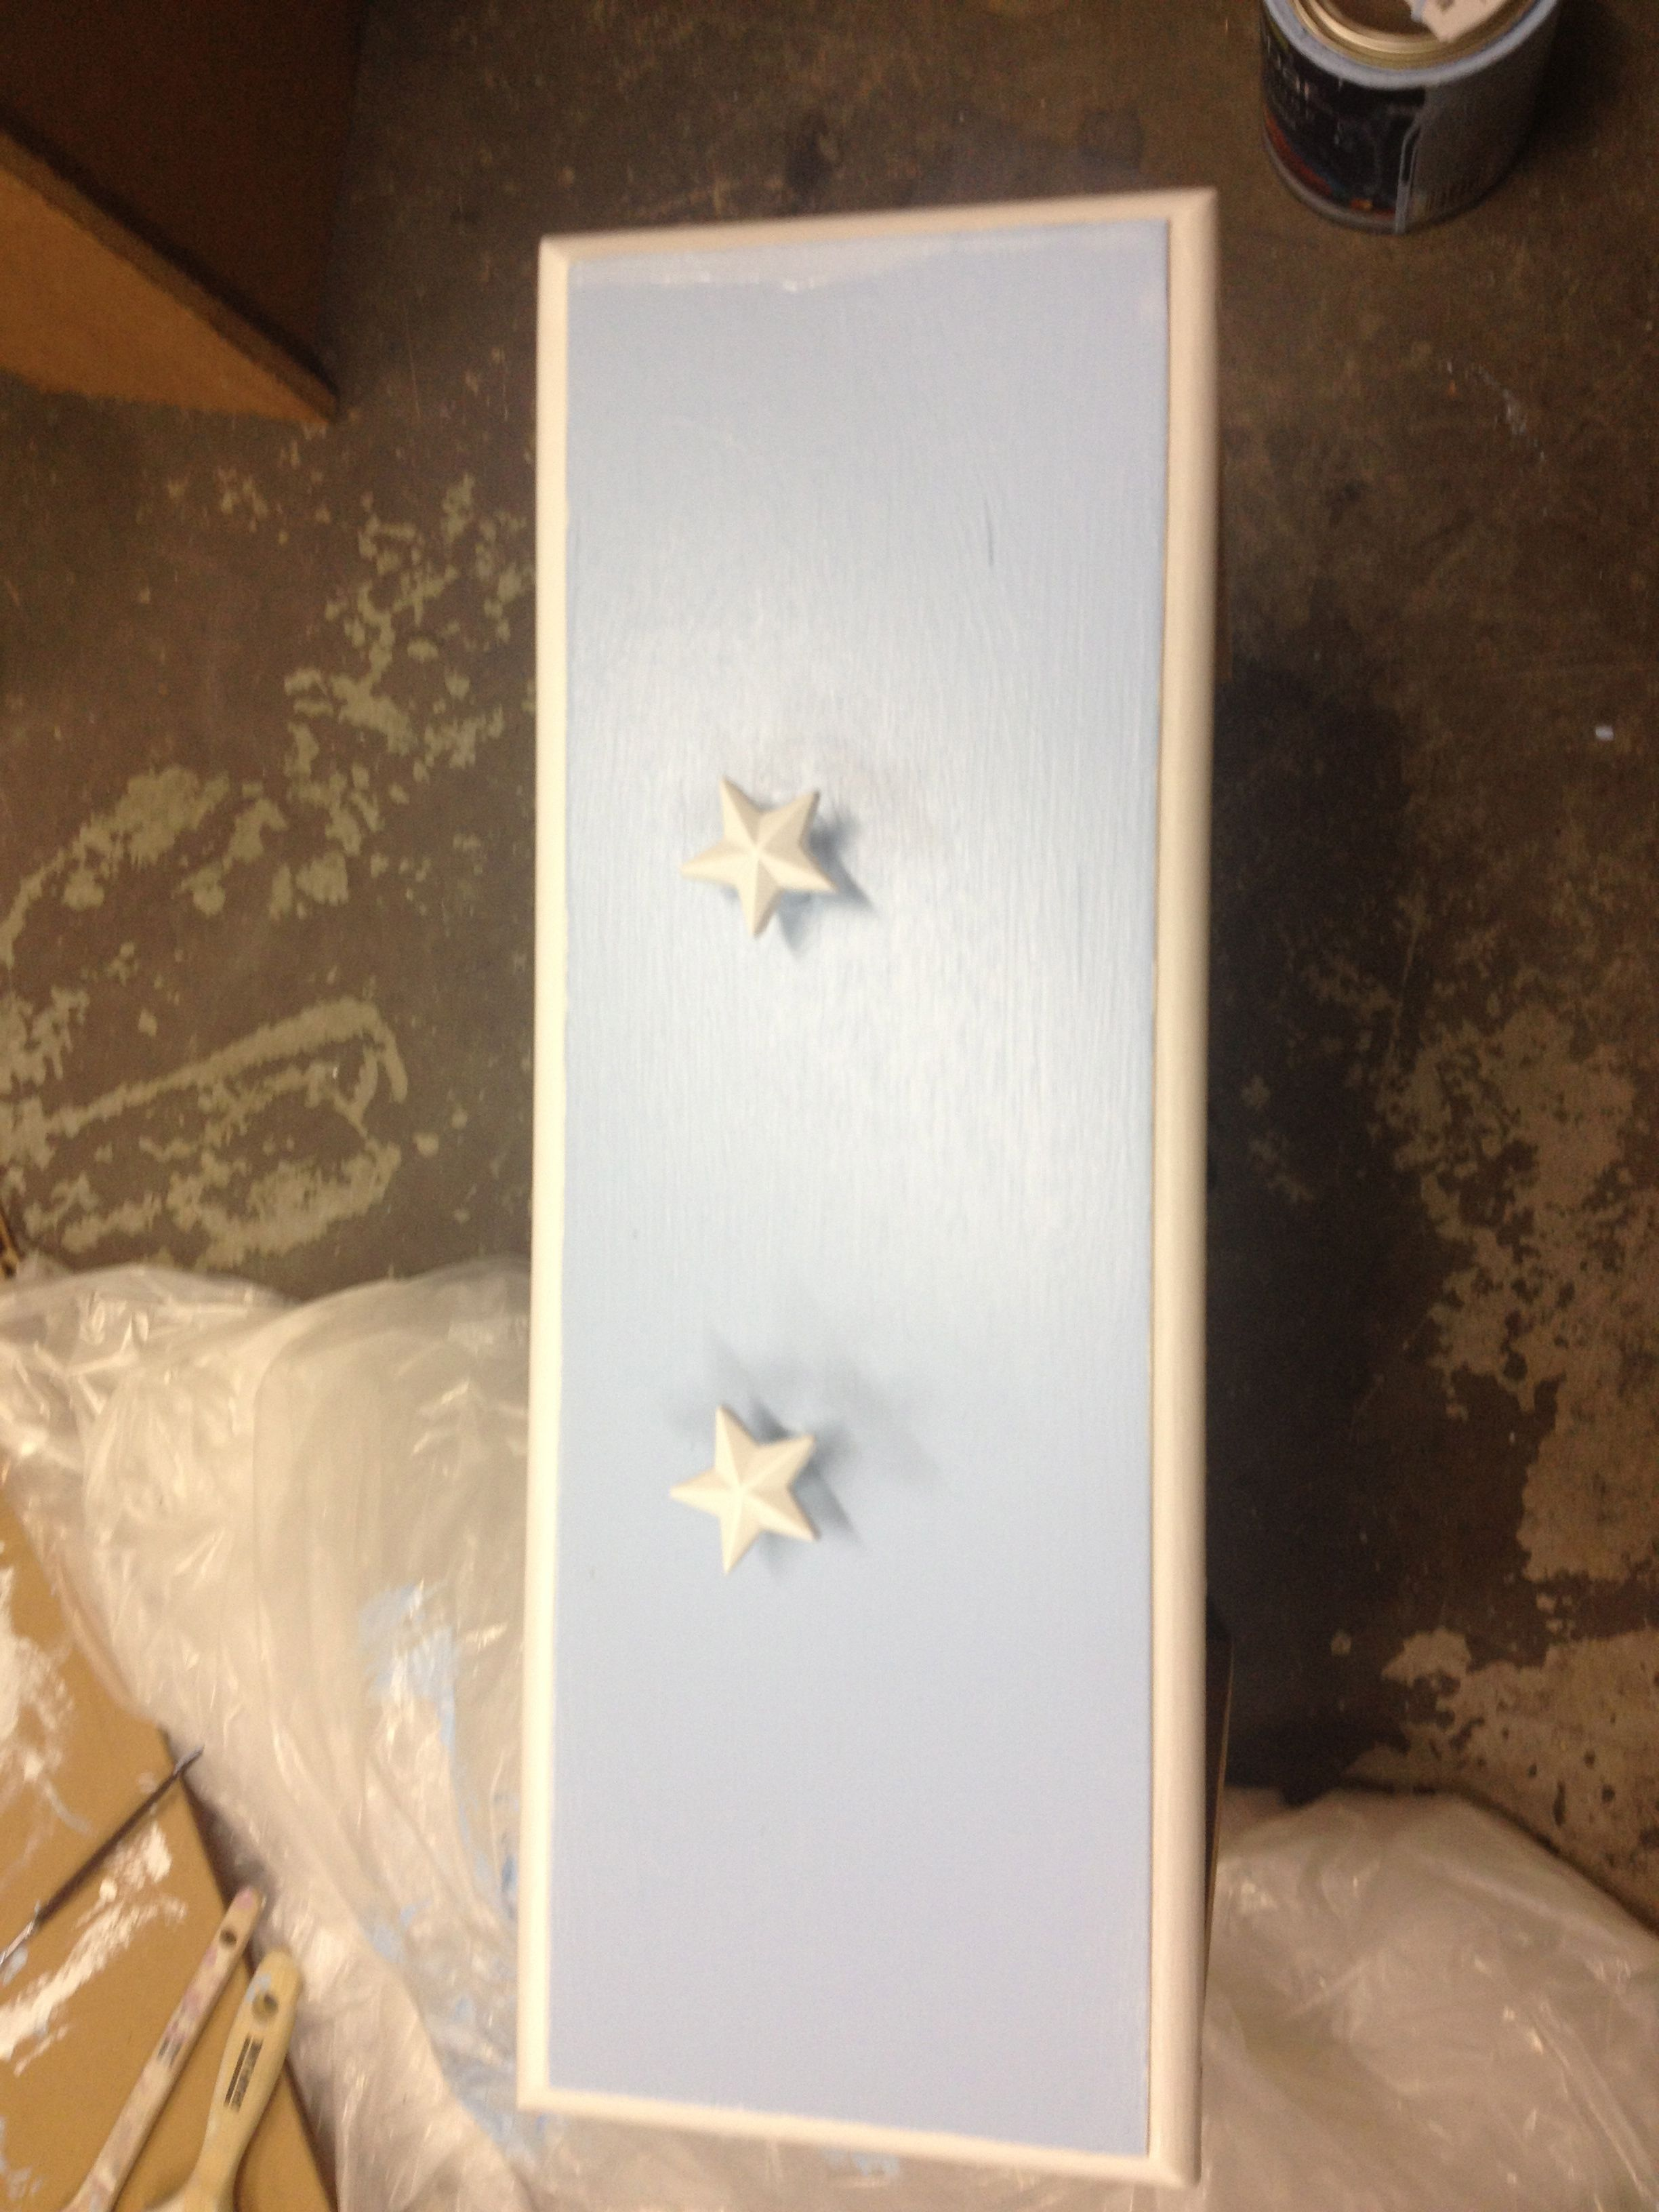 ADDING STAR DRAWER PULLS TO DRESSER FOR CHANGING TABLE